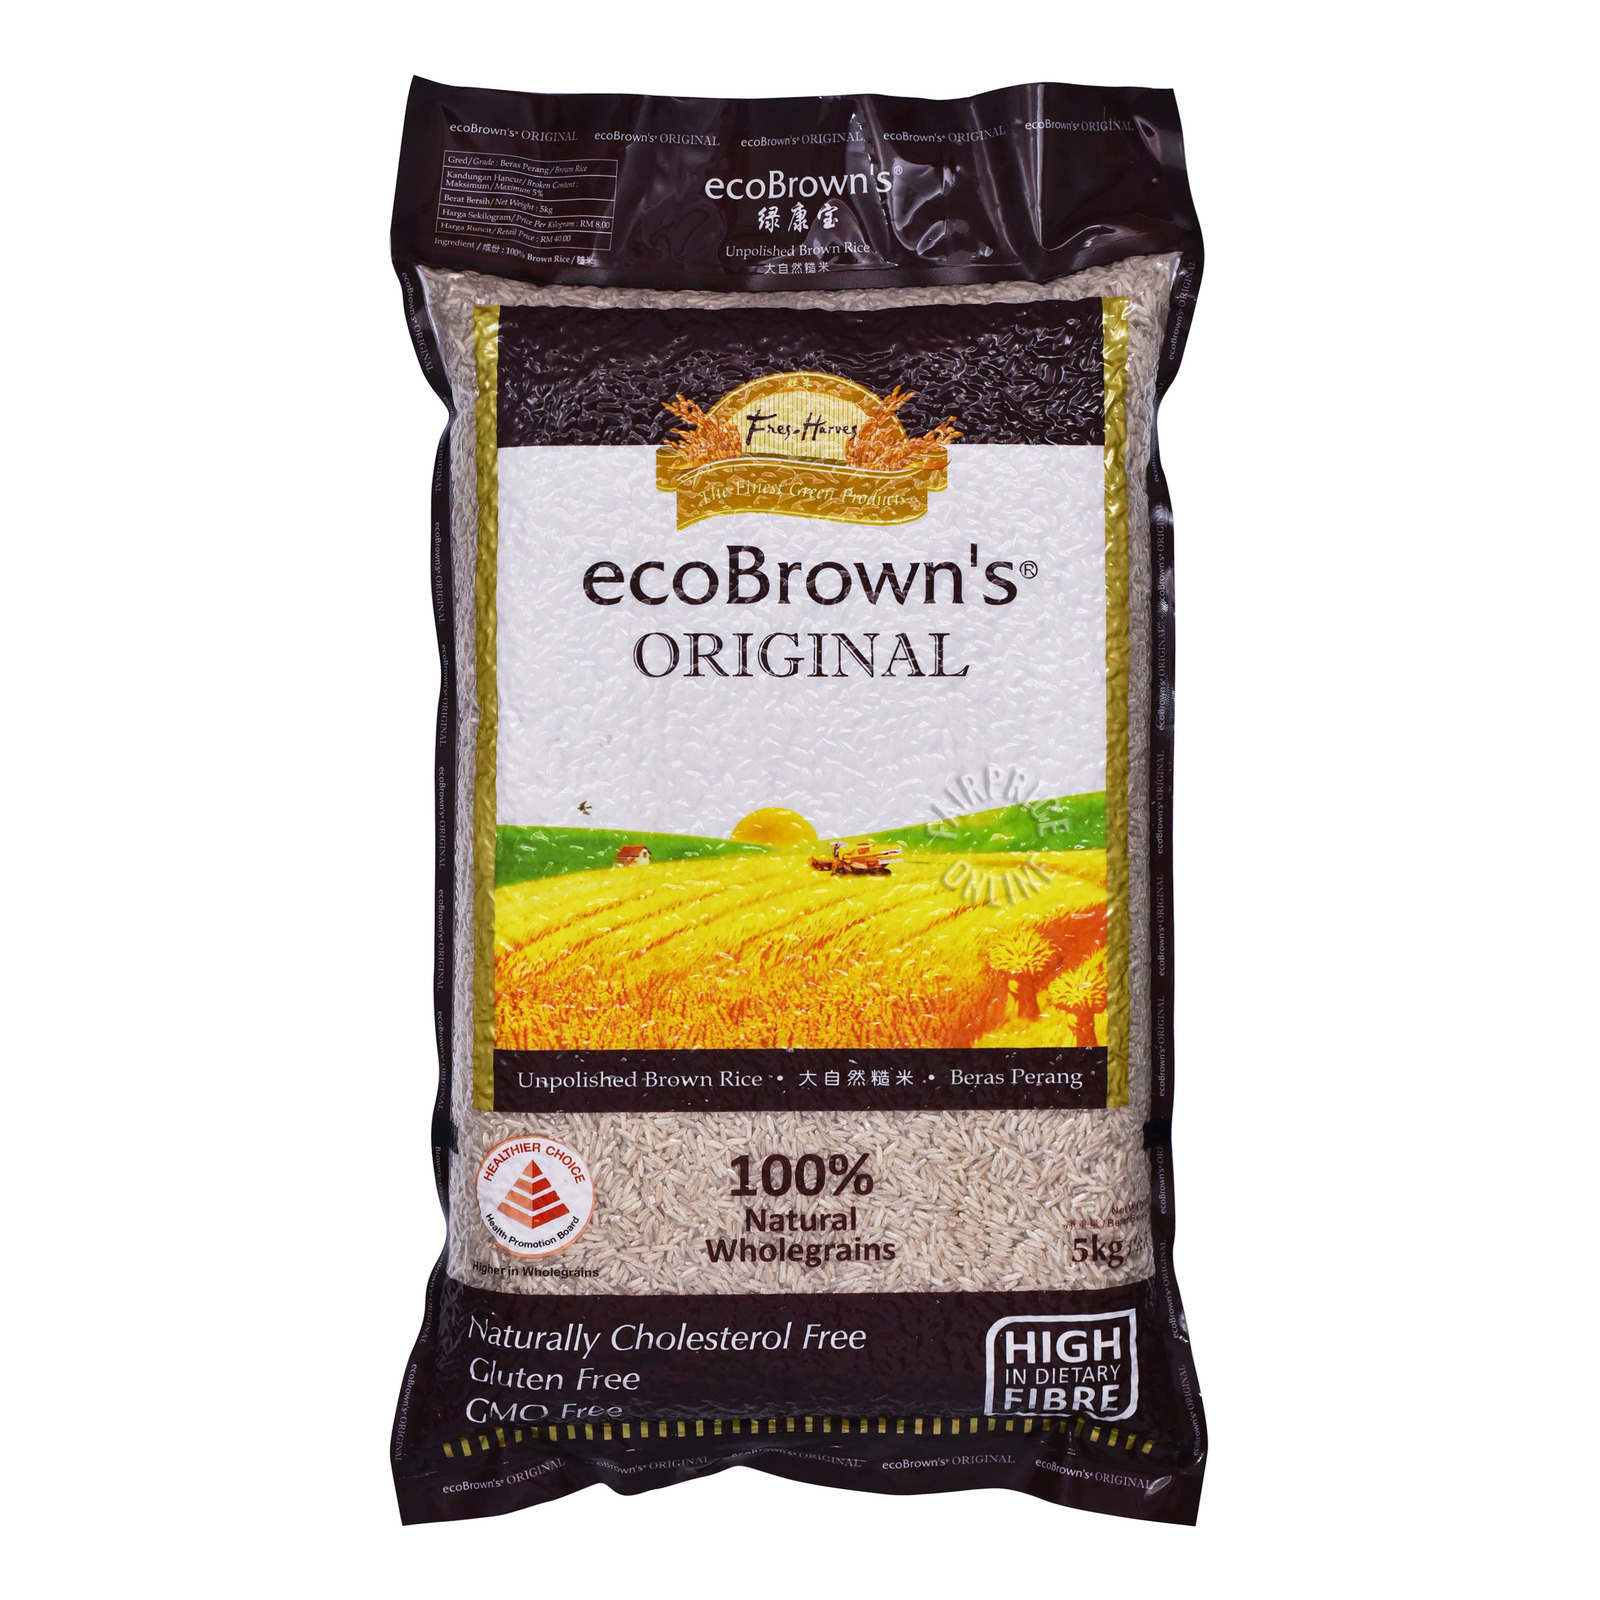 EcoBrown's Unpolished Brown Rice - Original